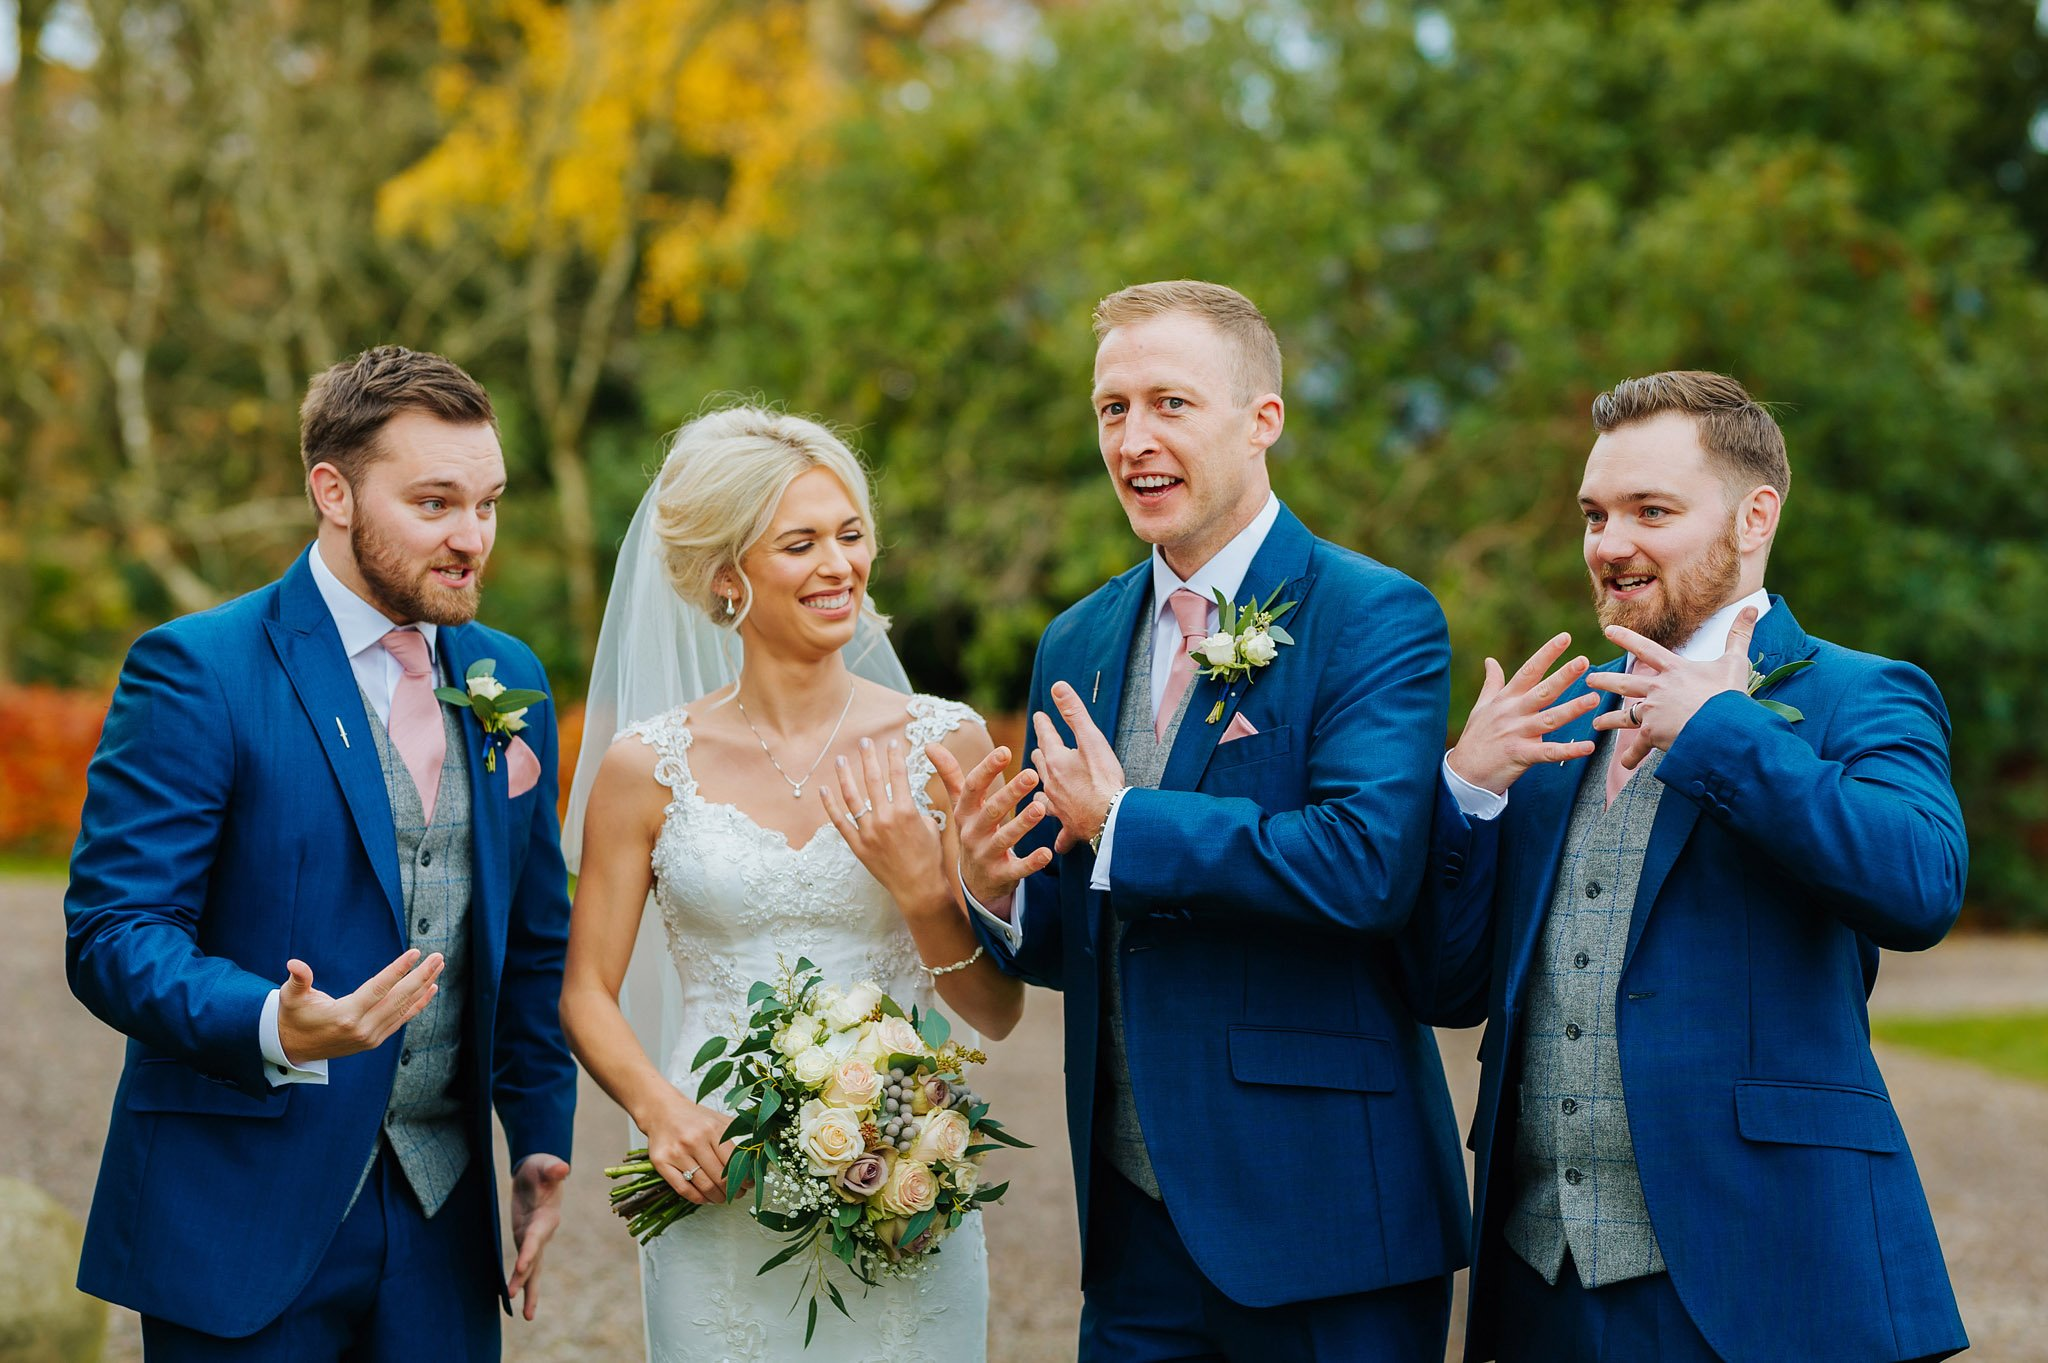 Lemore Manor wedding, Herefordshire - West Midlands | Sadie + Ken 55